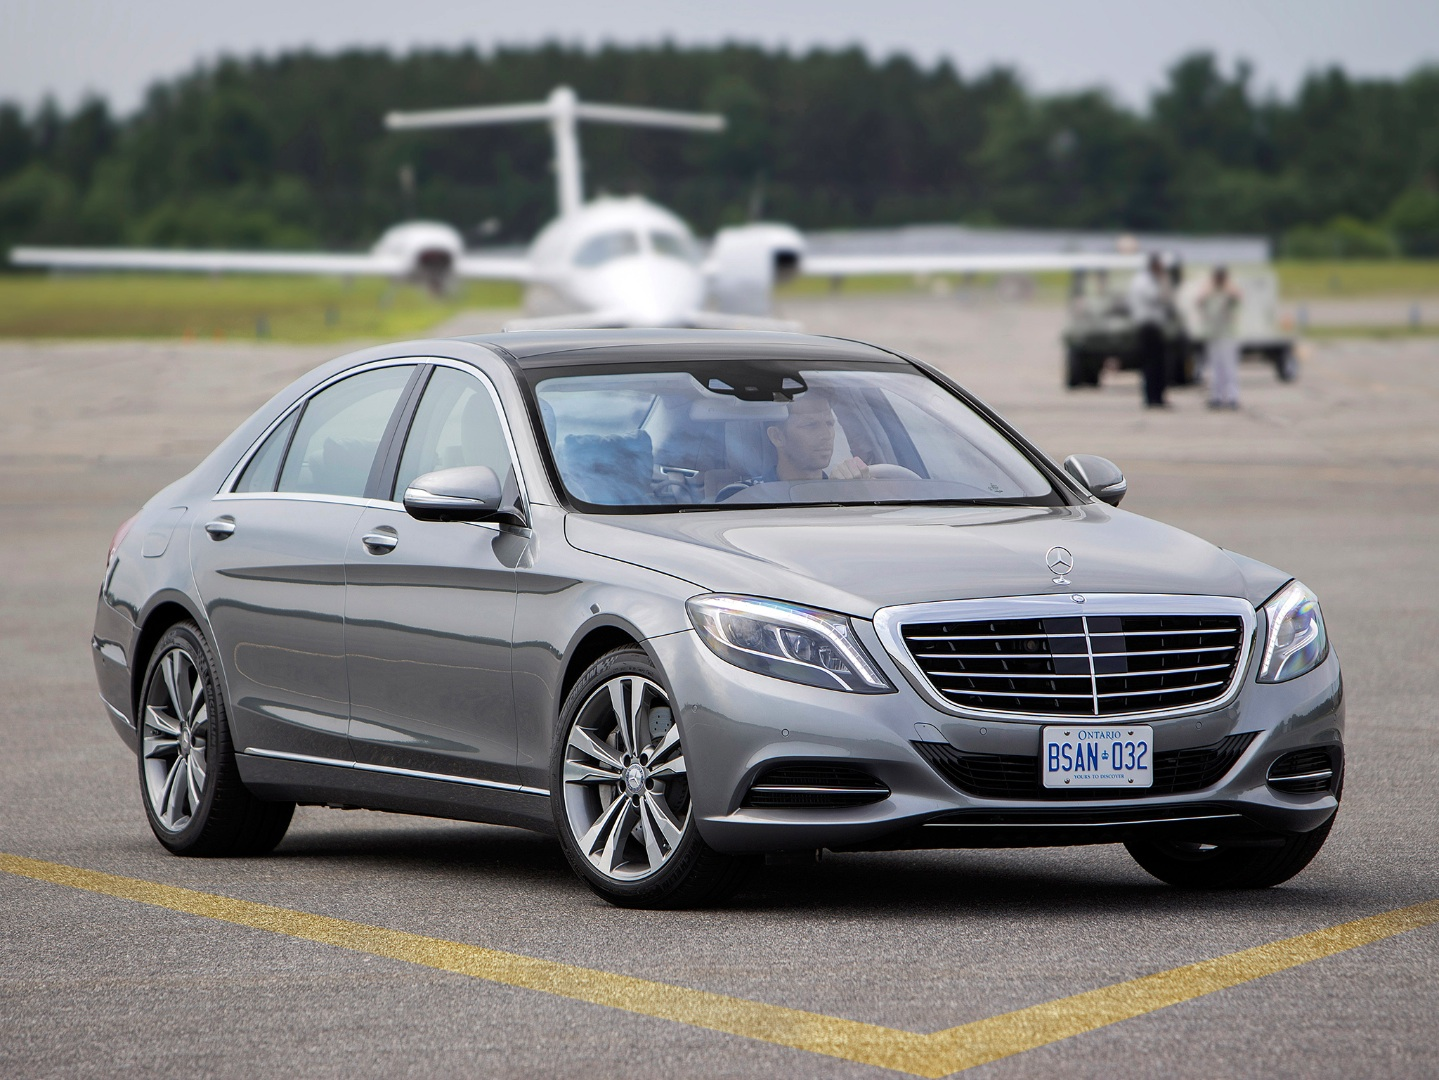 2014 mercedes benz s class w222 owner 39 s guide autoevolution for New mercedes benz s class